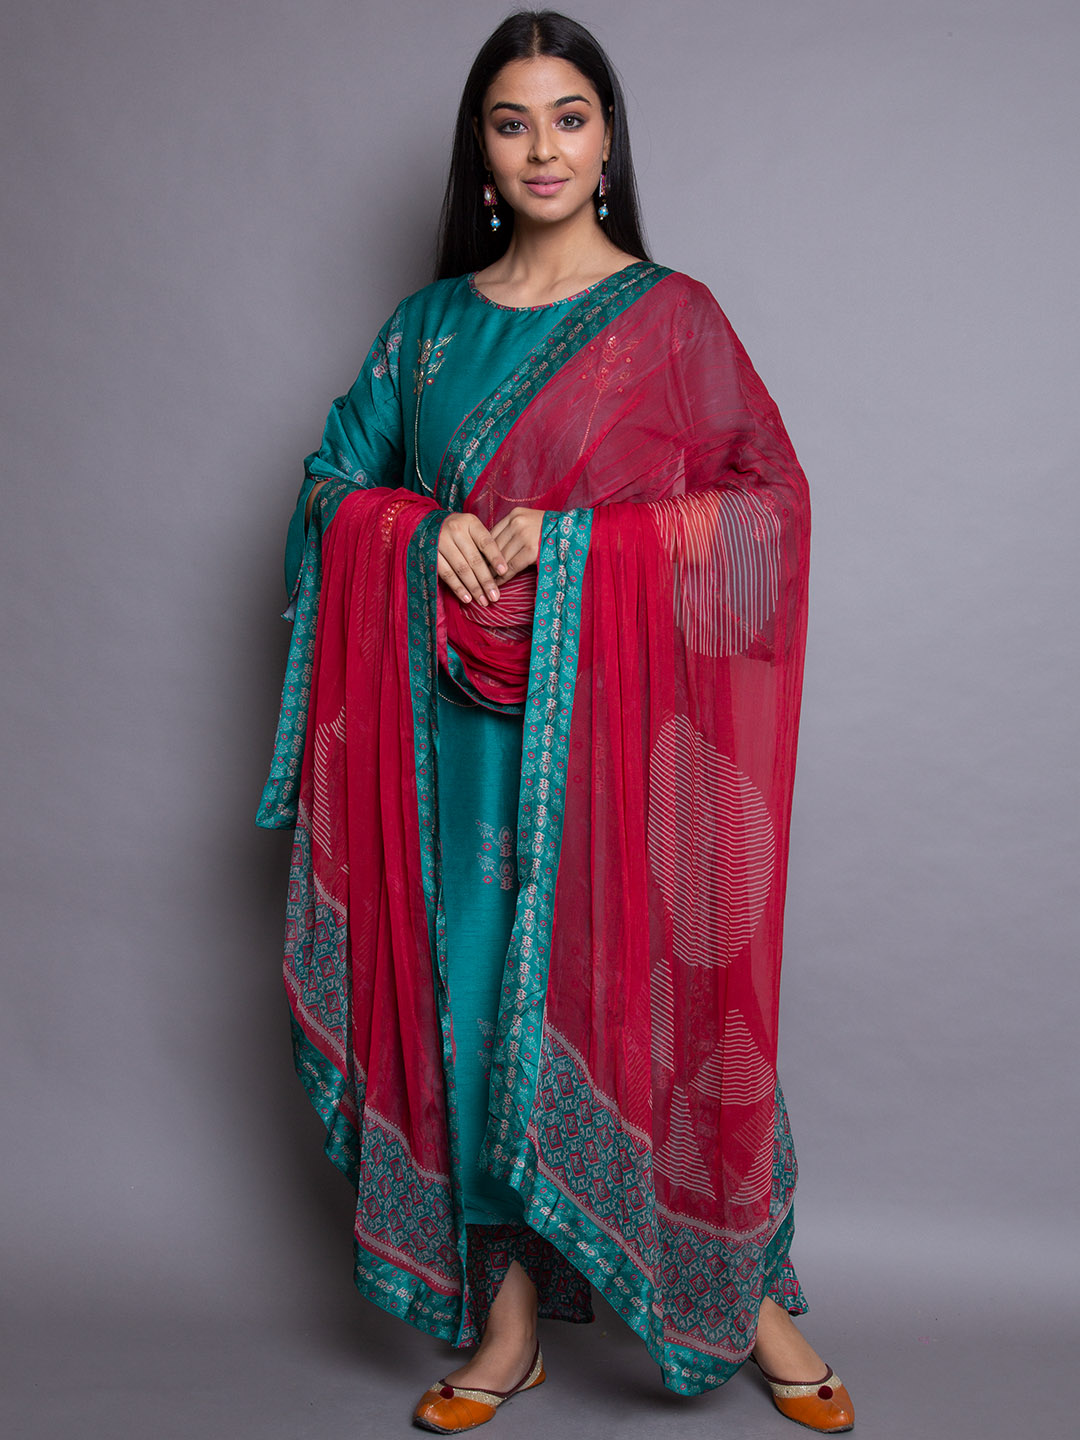 Green Zari Embroidery Suit